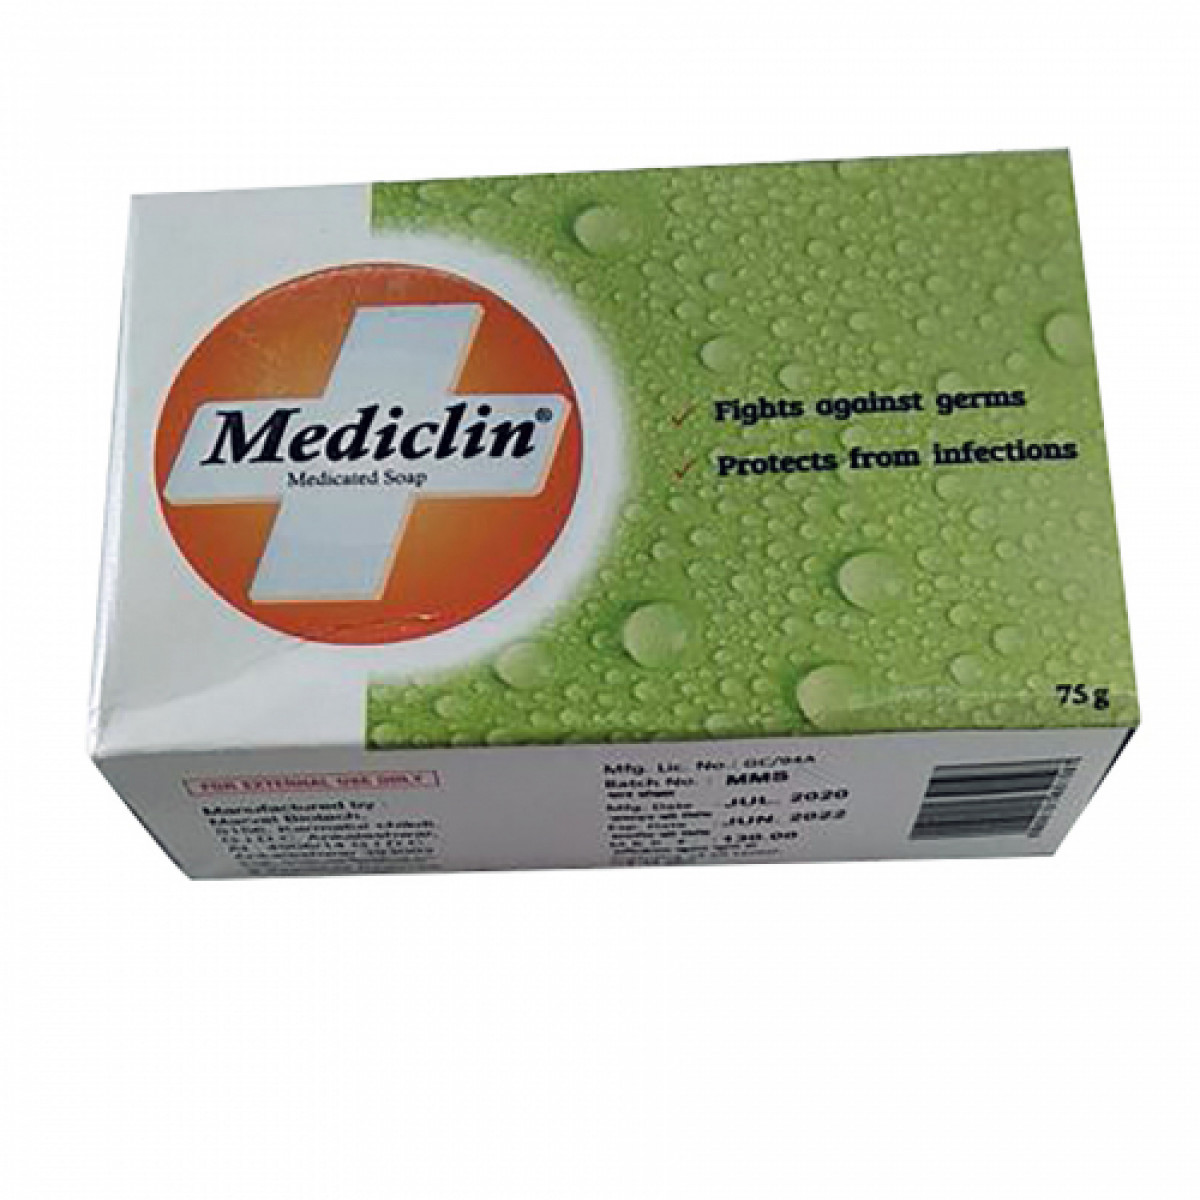 Mediclin Soap 75g pack of 4